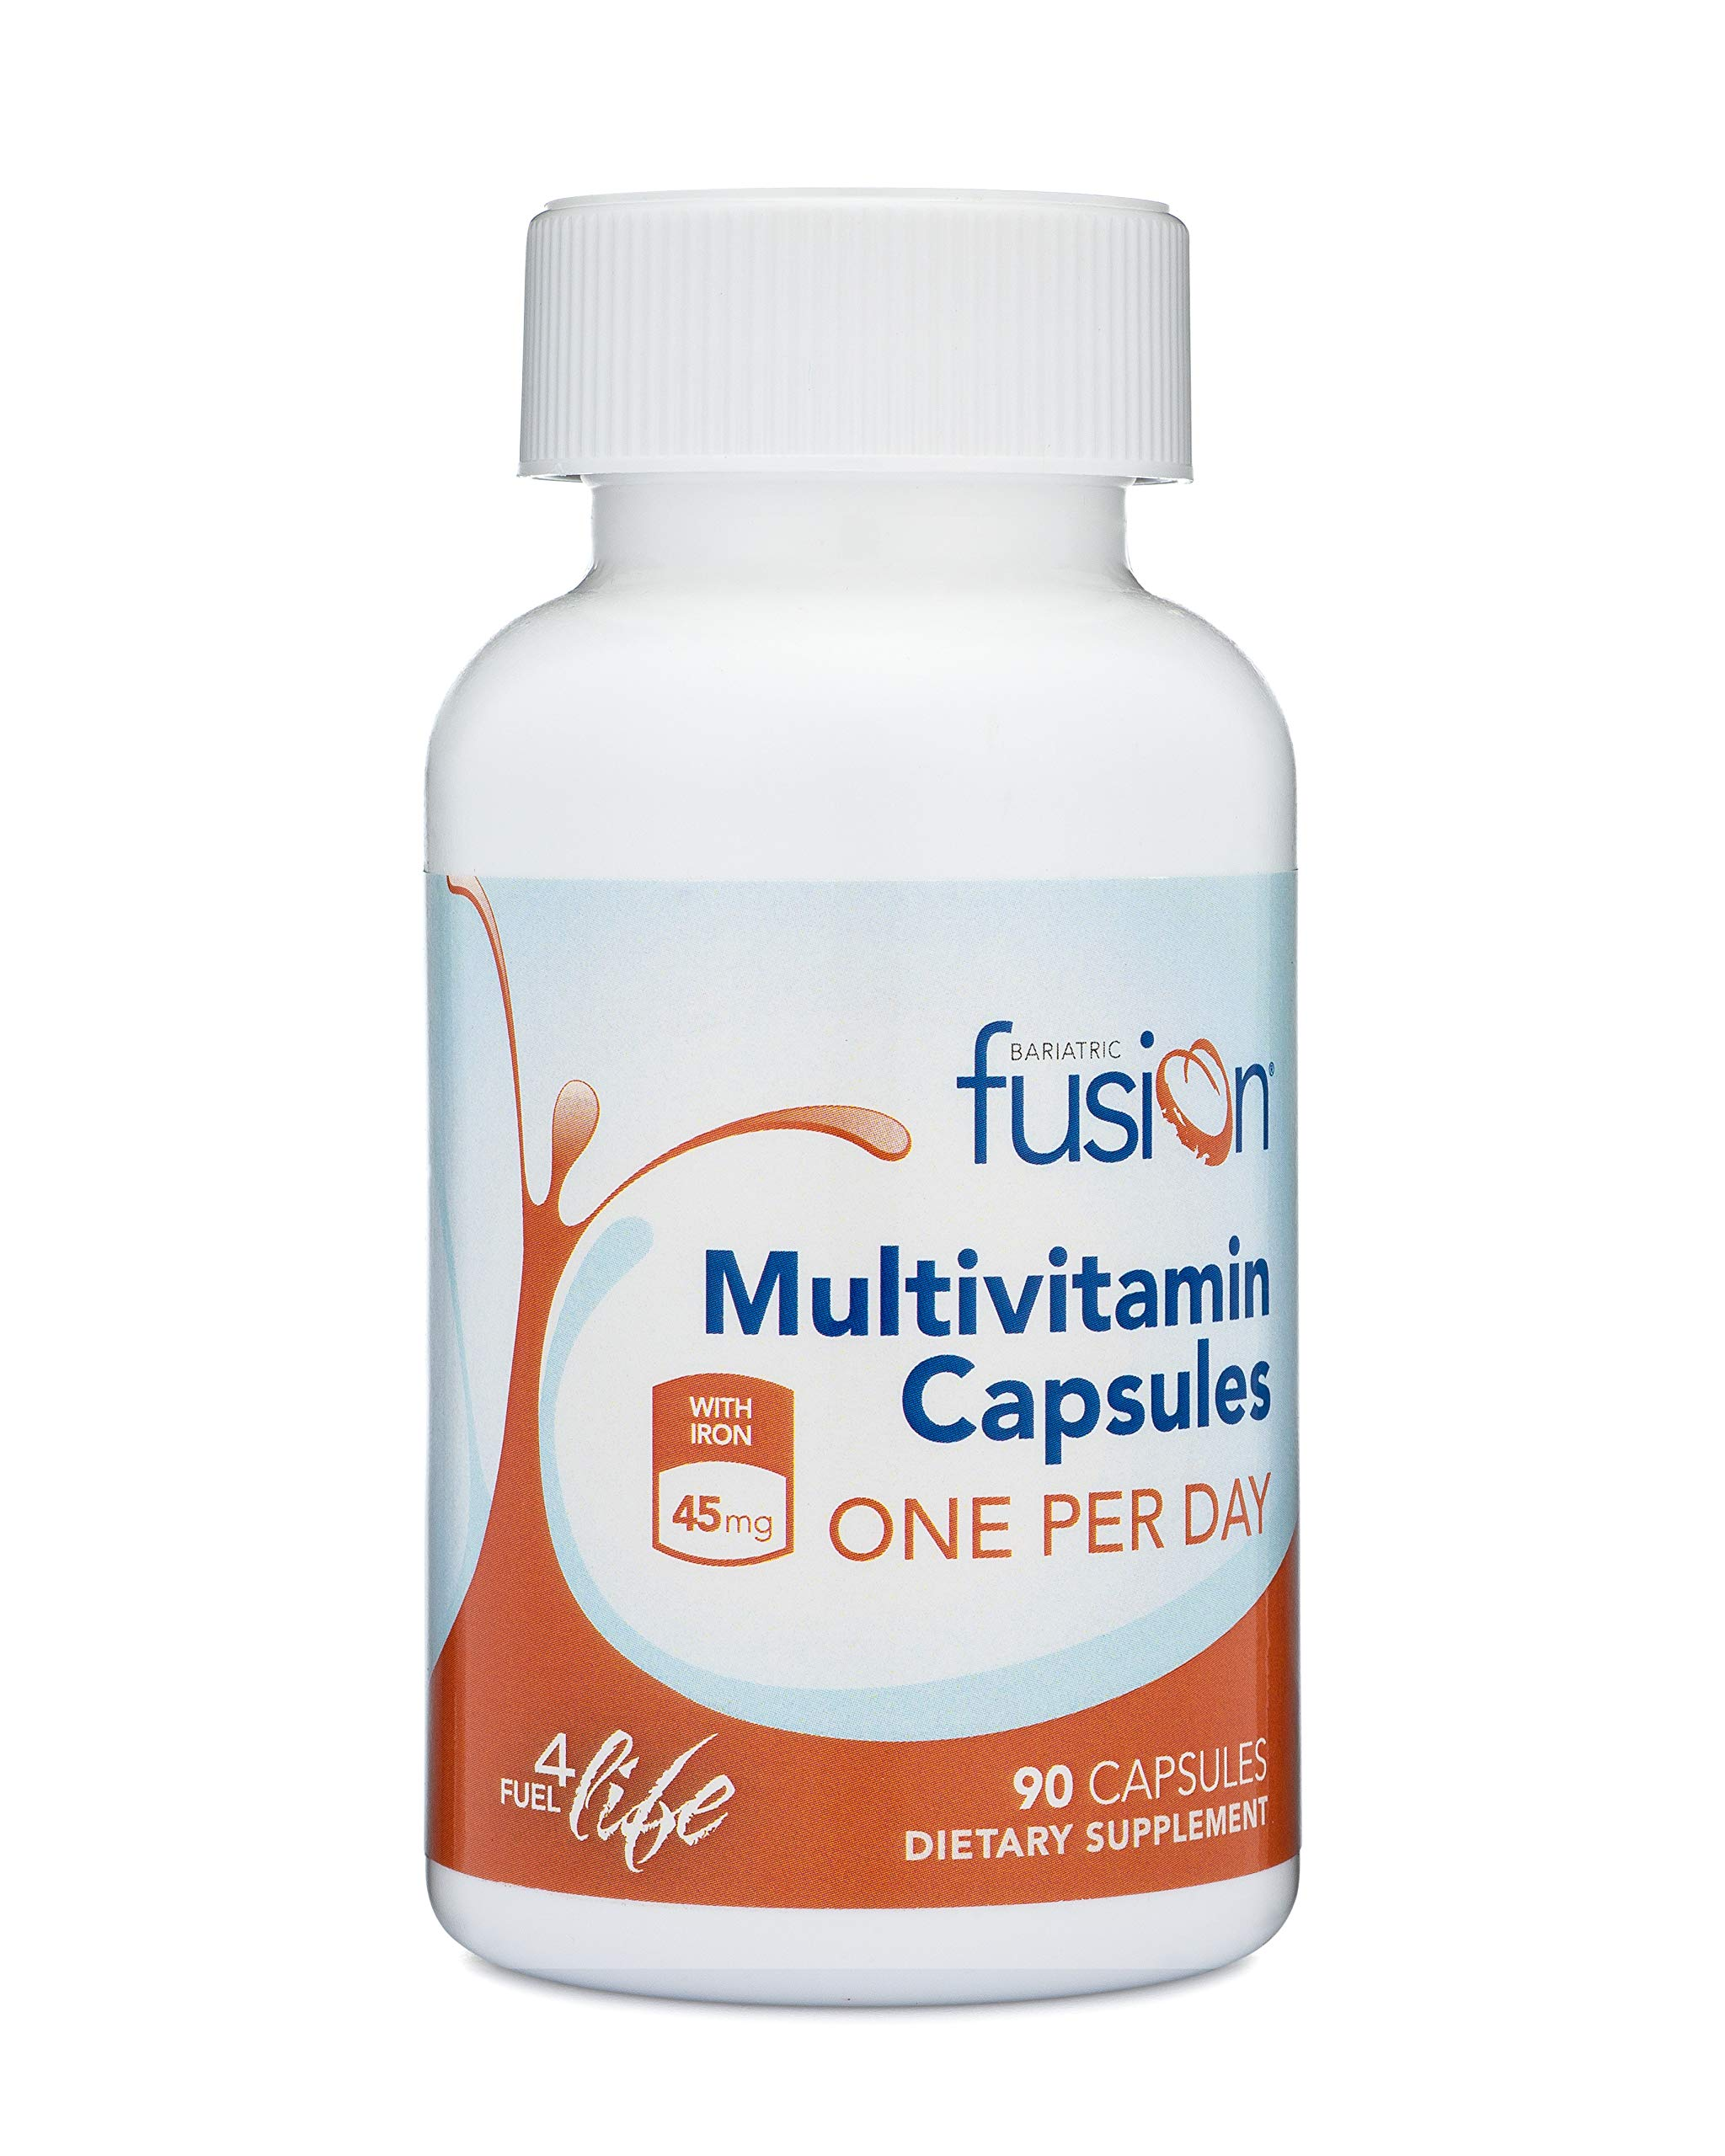 Bariatric Fusion Bariatric Multivitamin ONE per Day Capsule with 45mg of Iron for Post Bariatric Surgery Patients Including Gastric Bypass and Sleeve Gastrectomy, 90 Count, 3 Month Supply by Bariatric Fusion